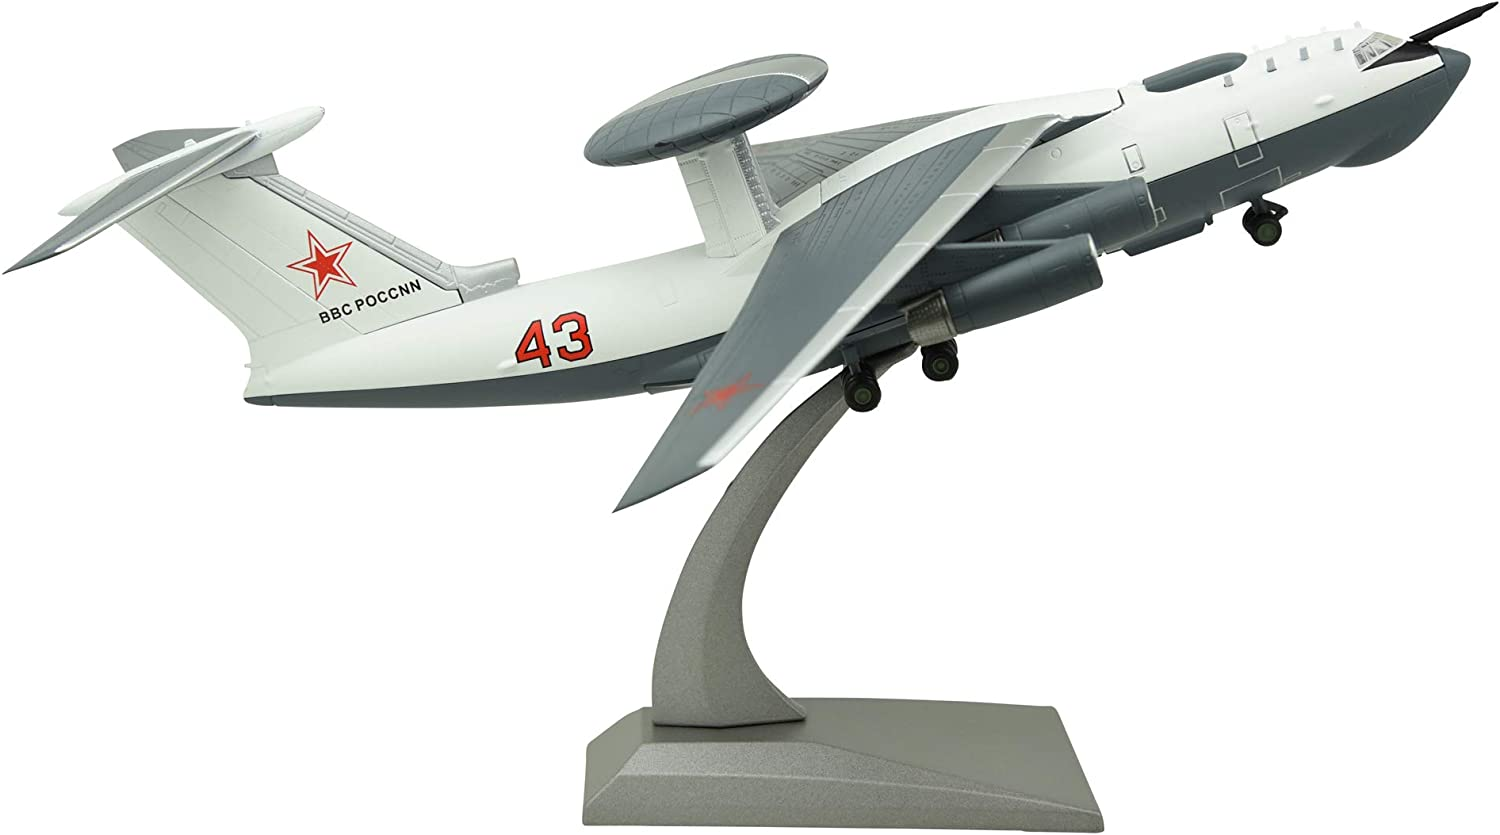 TANG DYNASTY 1:200 Beriev A-50M AWACS Early Warning Airplane Metal Plane Model,Soviet Union,Military Airplane Model,Diecast/Plane,for Collecting and Gift